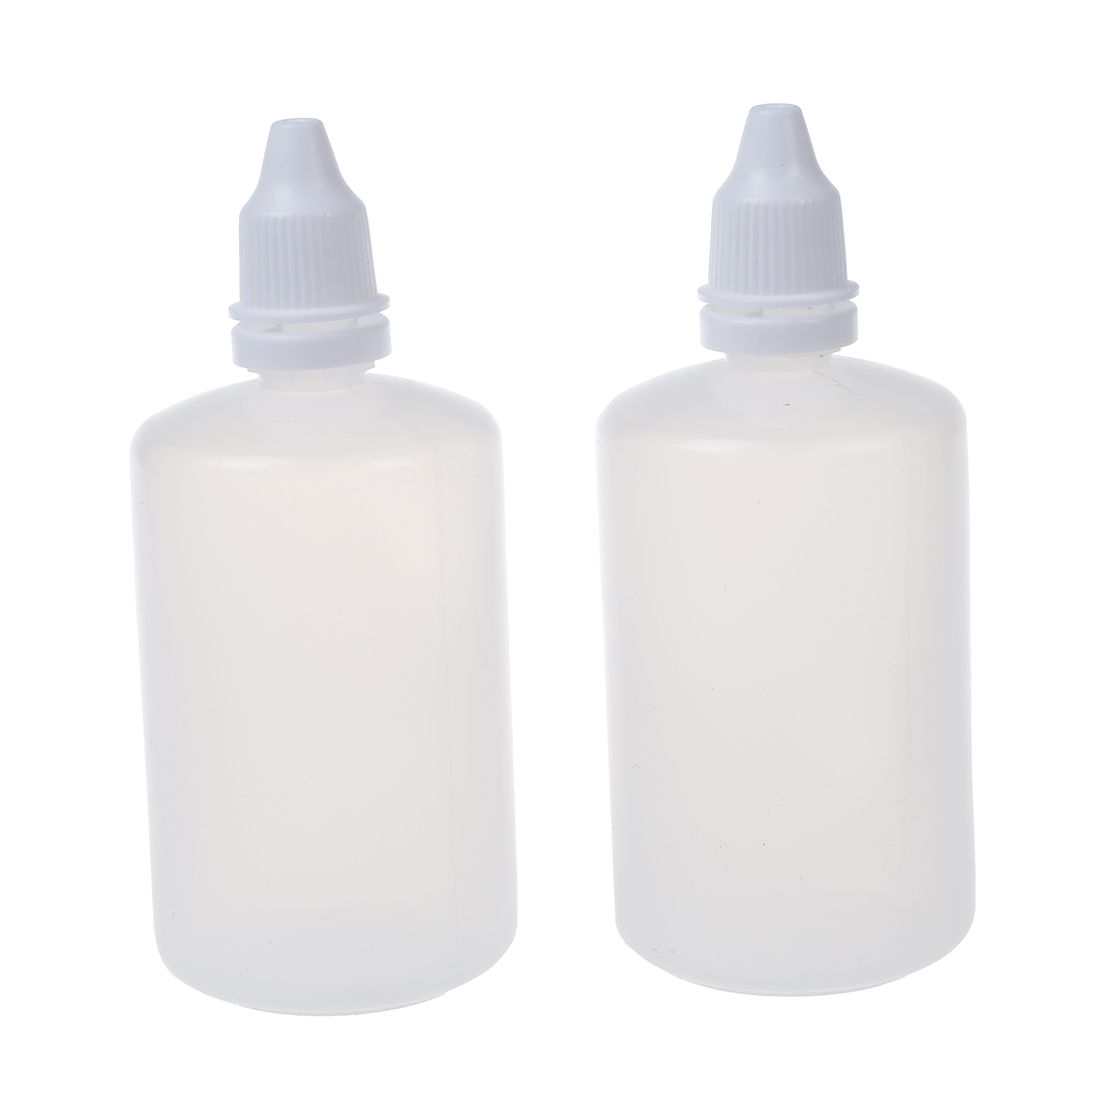 Pack of 50 Plastic LDPE Squeezable Dropper Bottles Eye Liquid Empty New (100ml capacity) mymei 50ml empty plastic dropper bottles eye dropper liquid learning games